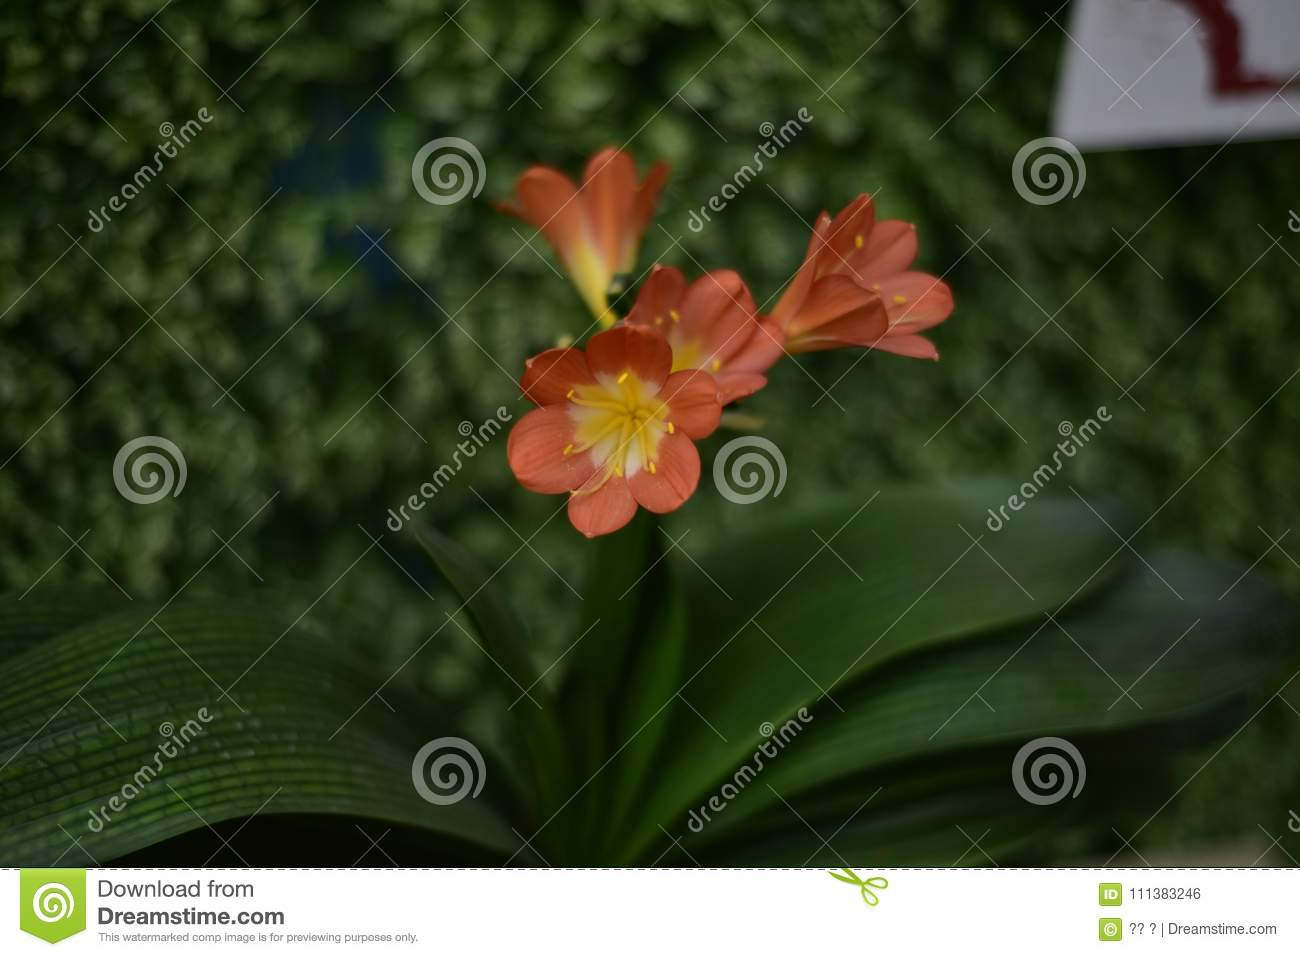 Rare clivia open in winter stock photo image of latin 111383246 for the uezhu fumiyajunxiu of clivia red spider lily with a gentleman charm flowers such as orchids named noble of the meaning of clivia flower izmirmasajfo